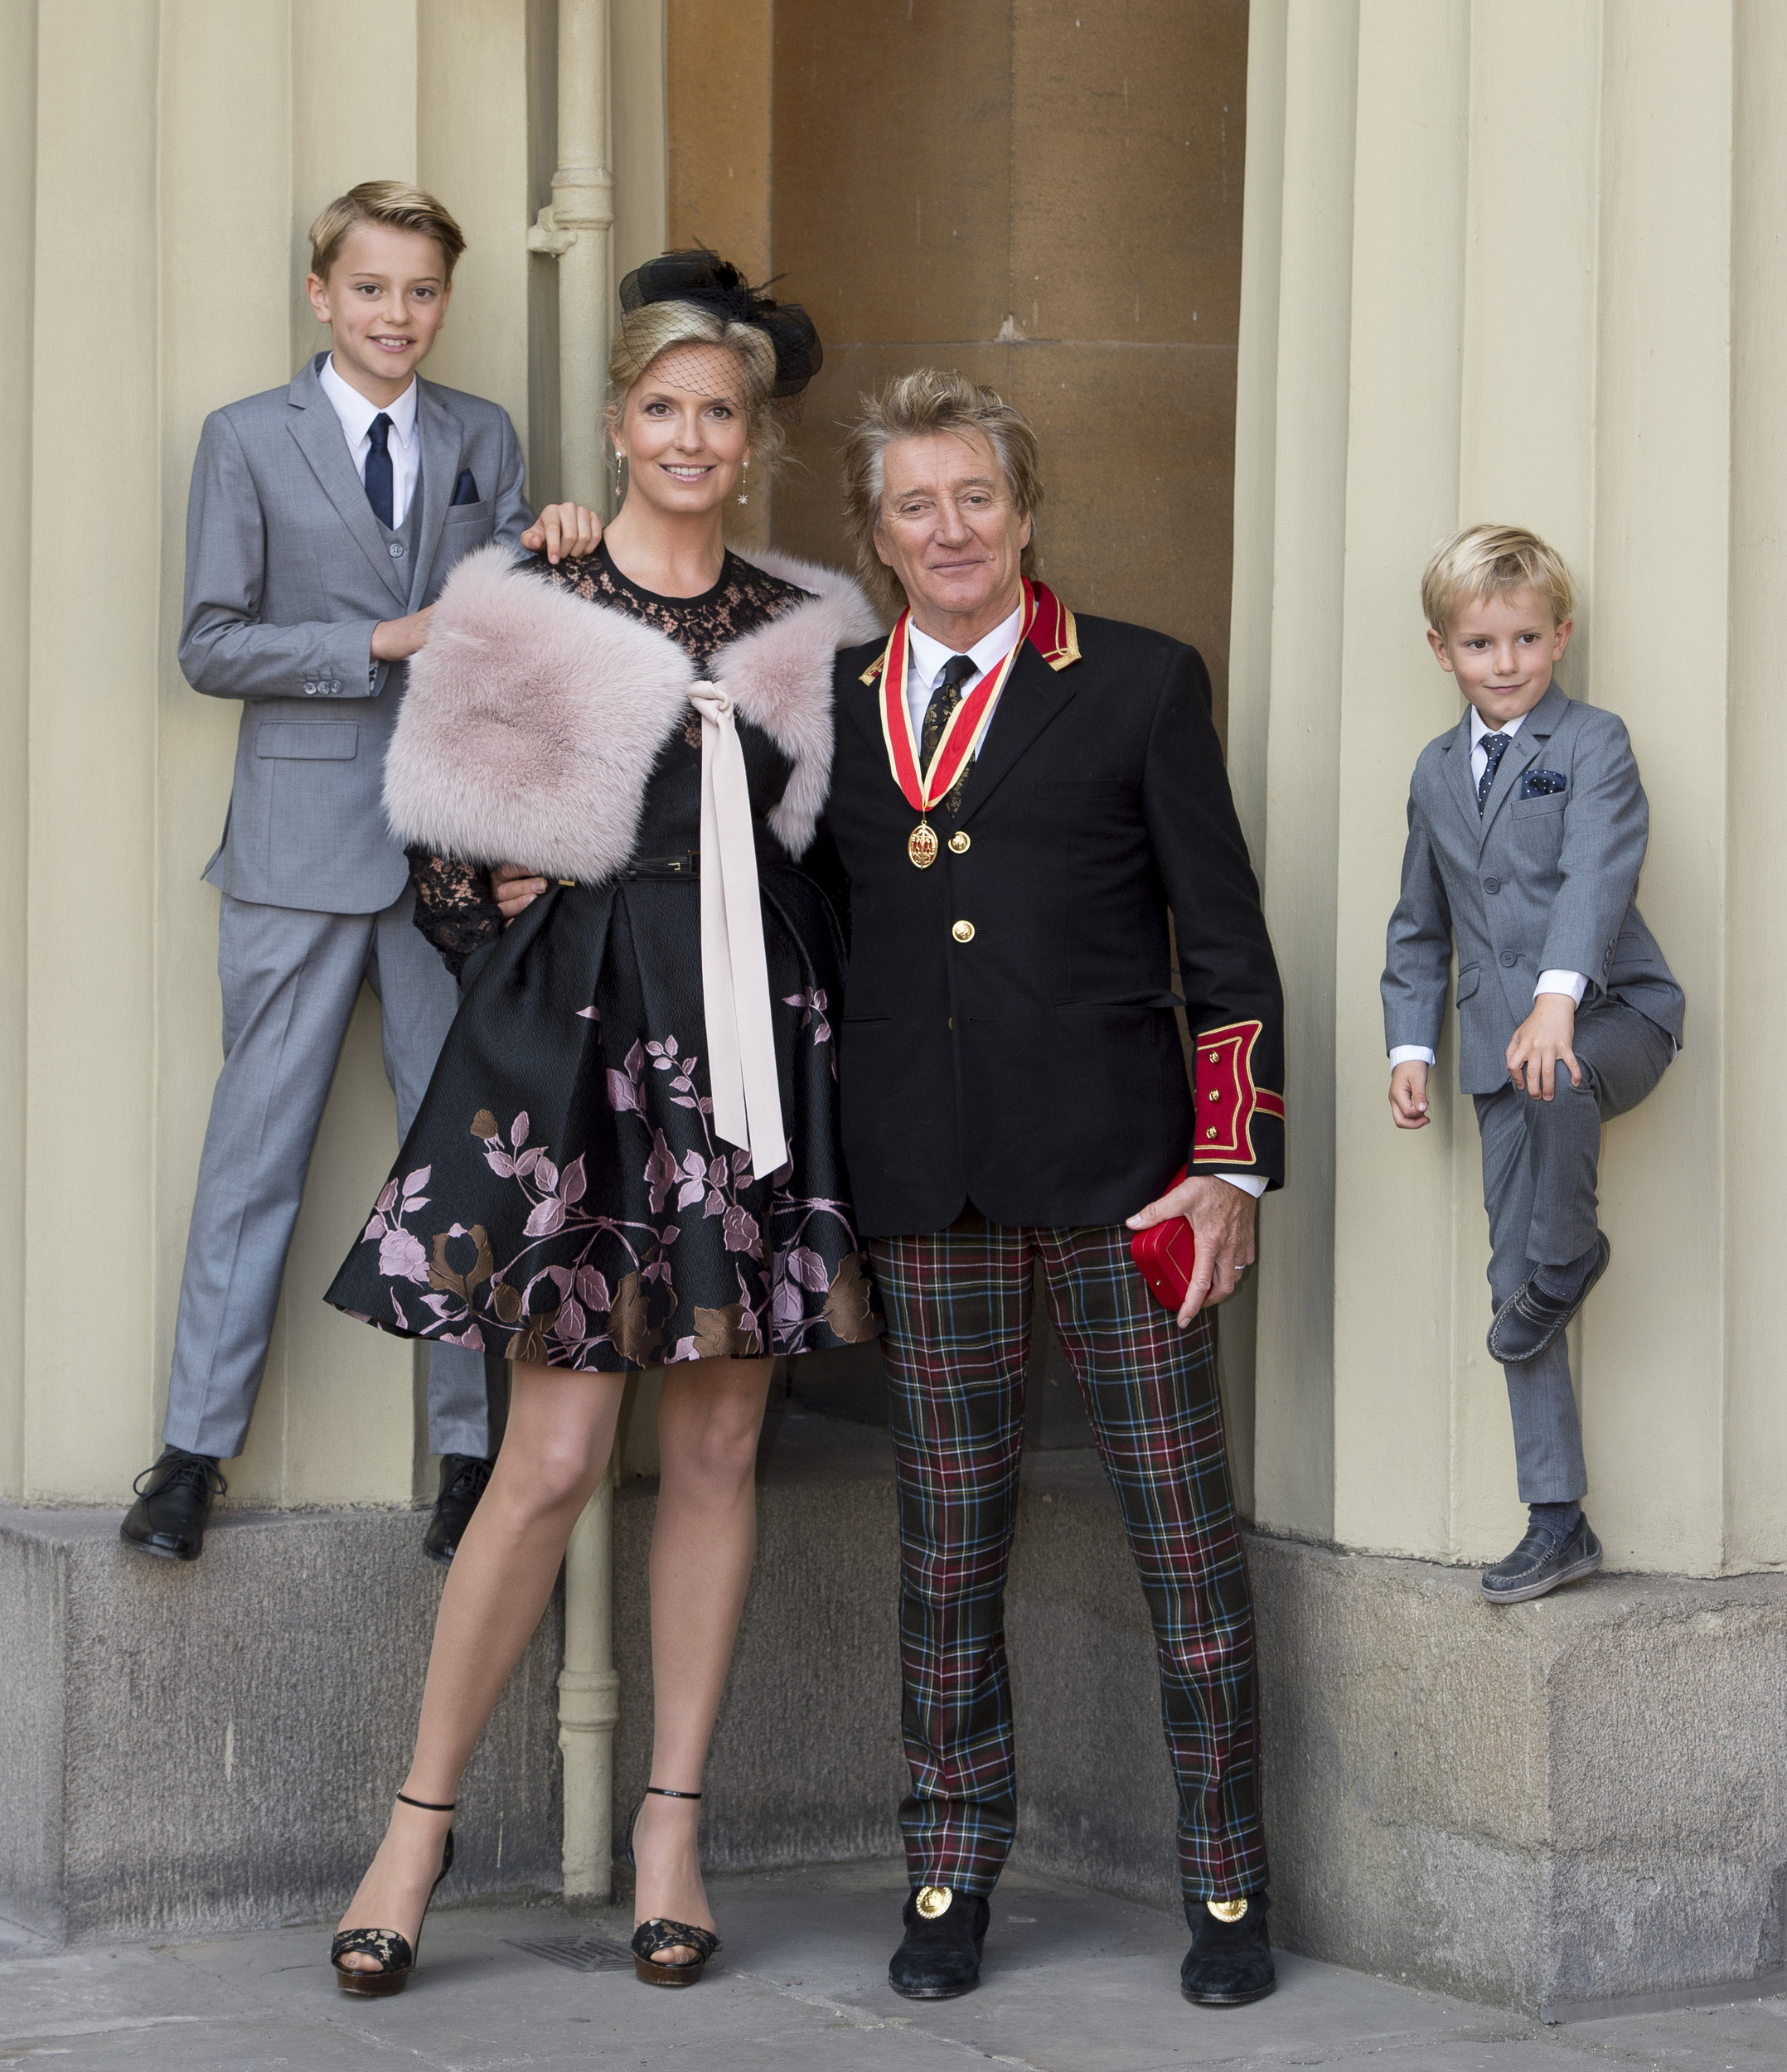 Rod Stewart poses for rare photo with his 4 sons and Penny Lancaster